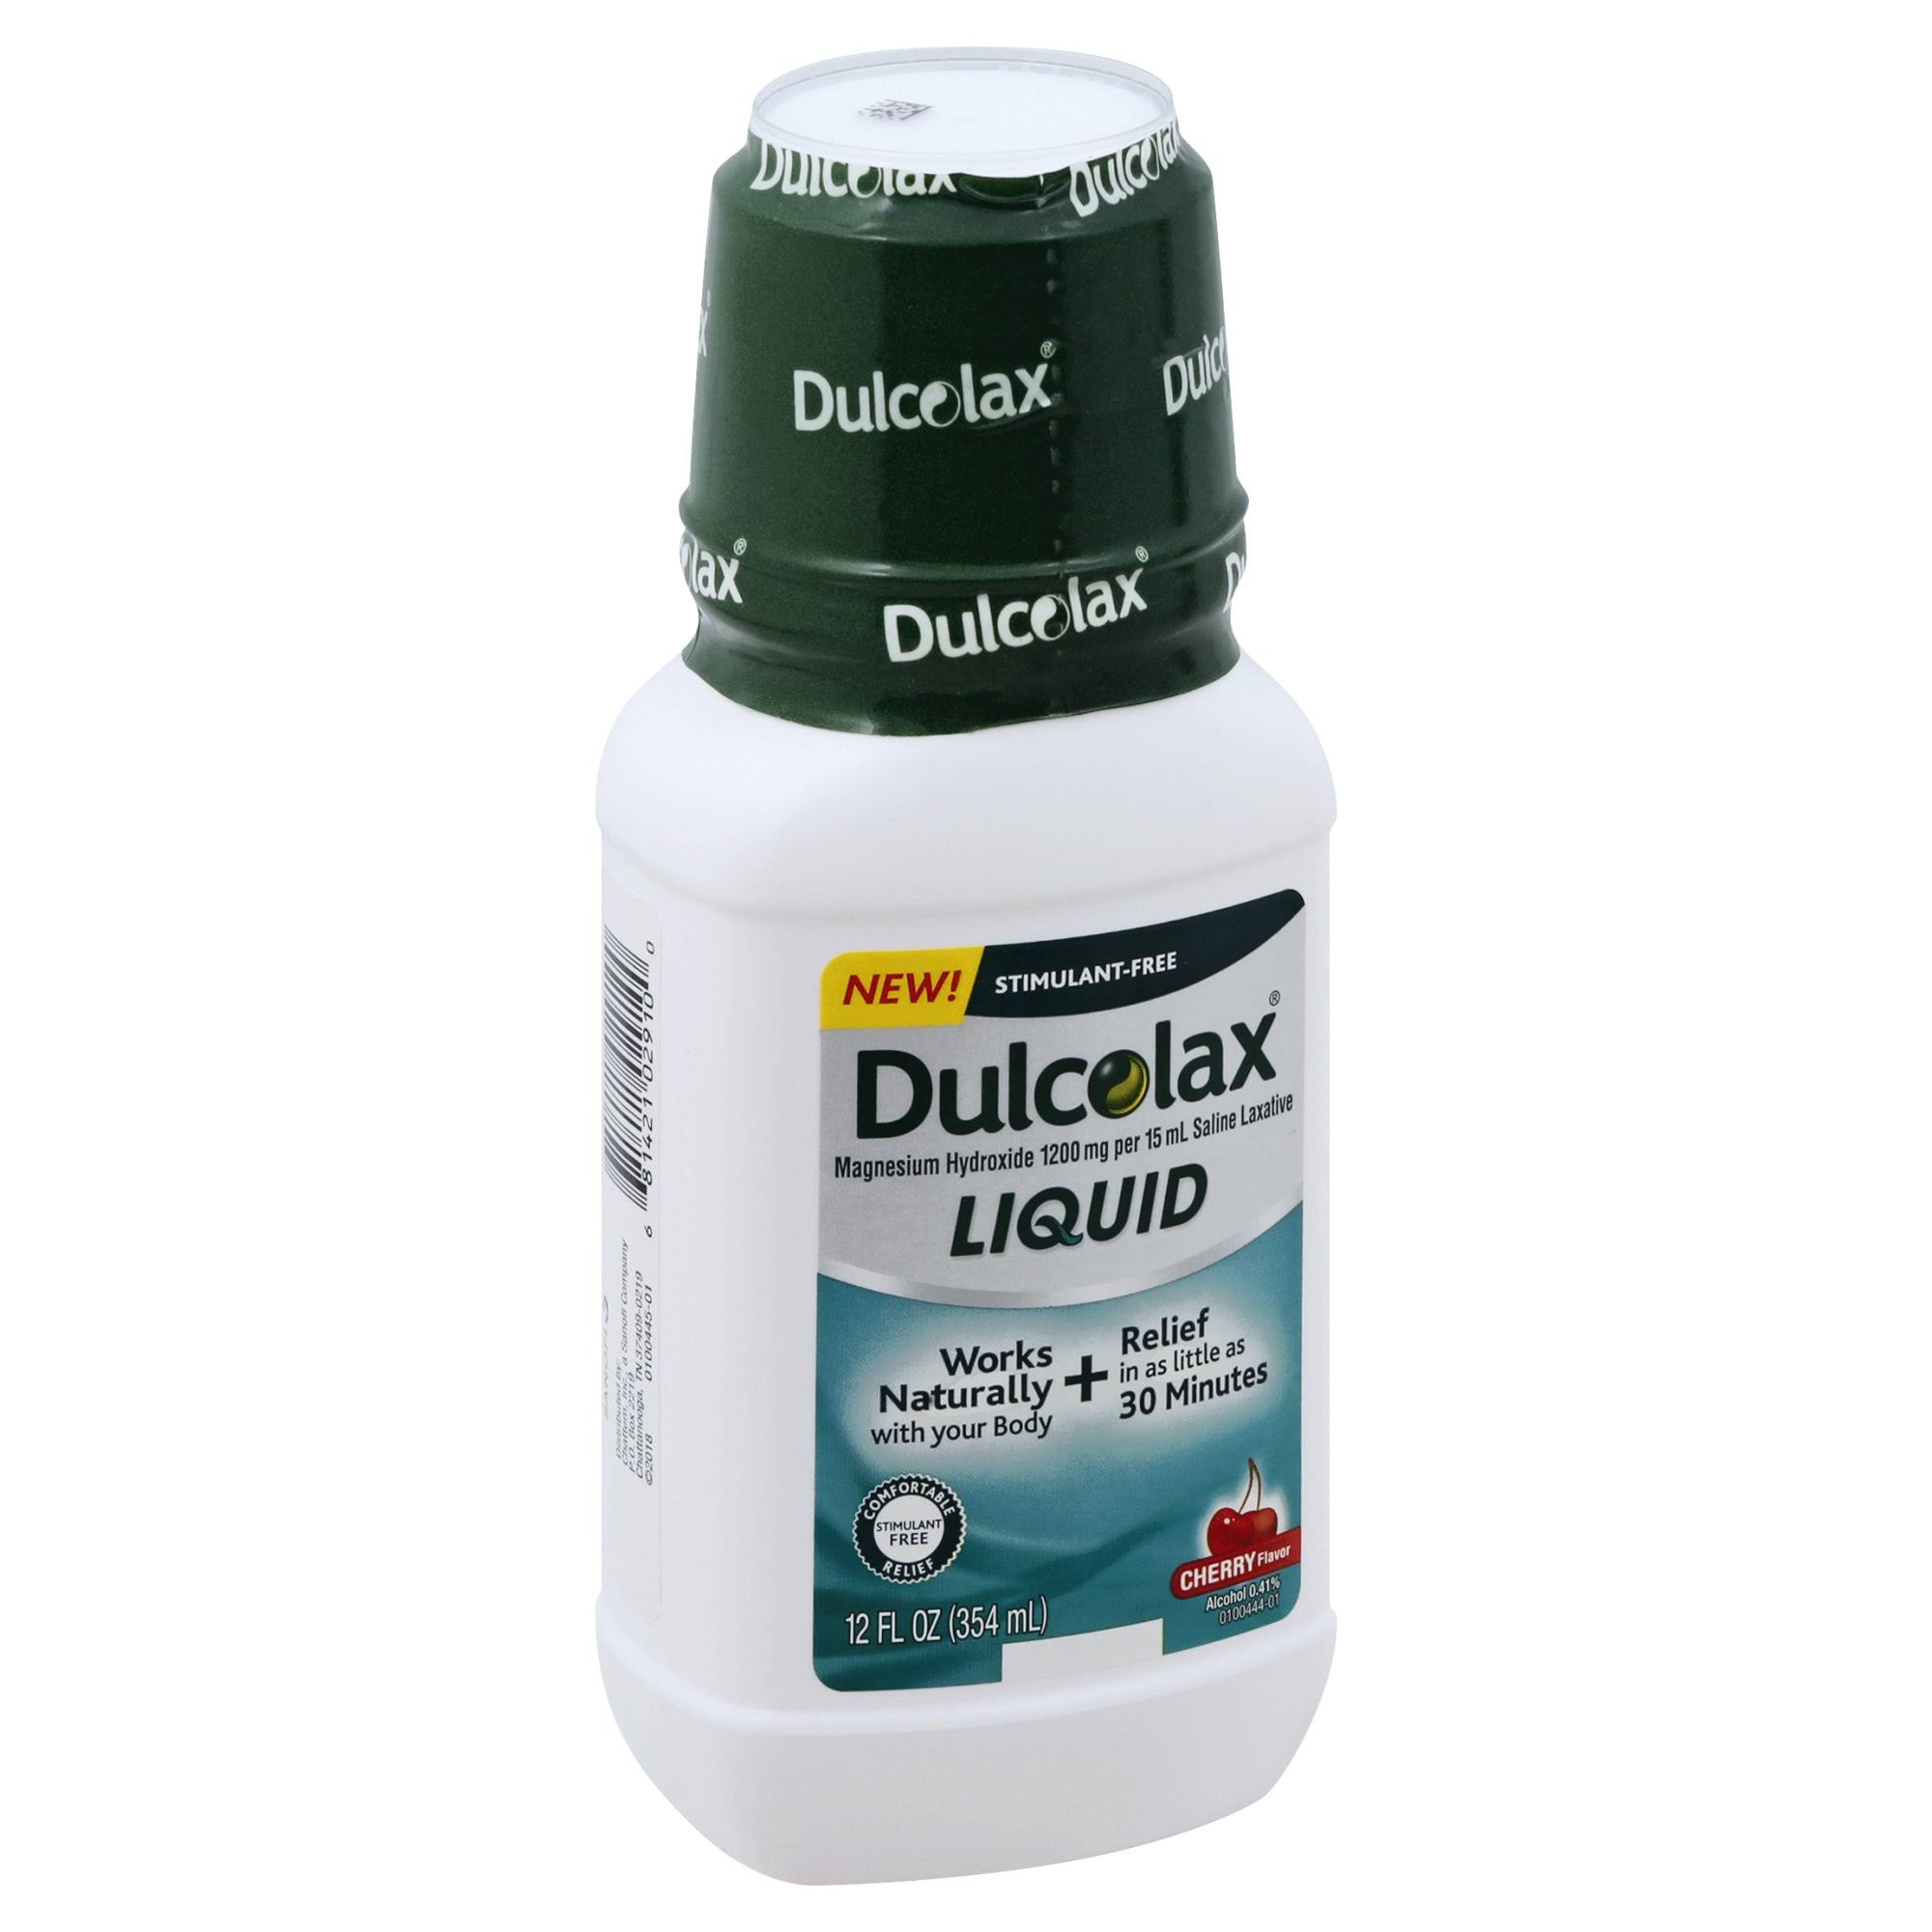 Dulcolax Constipation Relief, Cherry Flavor, Liquid - 12 fl oz